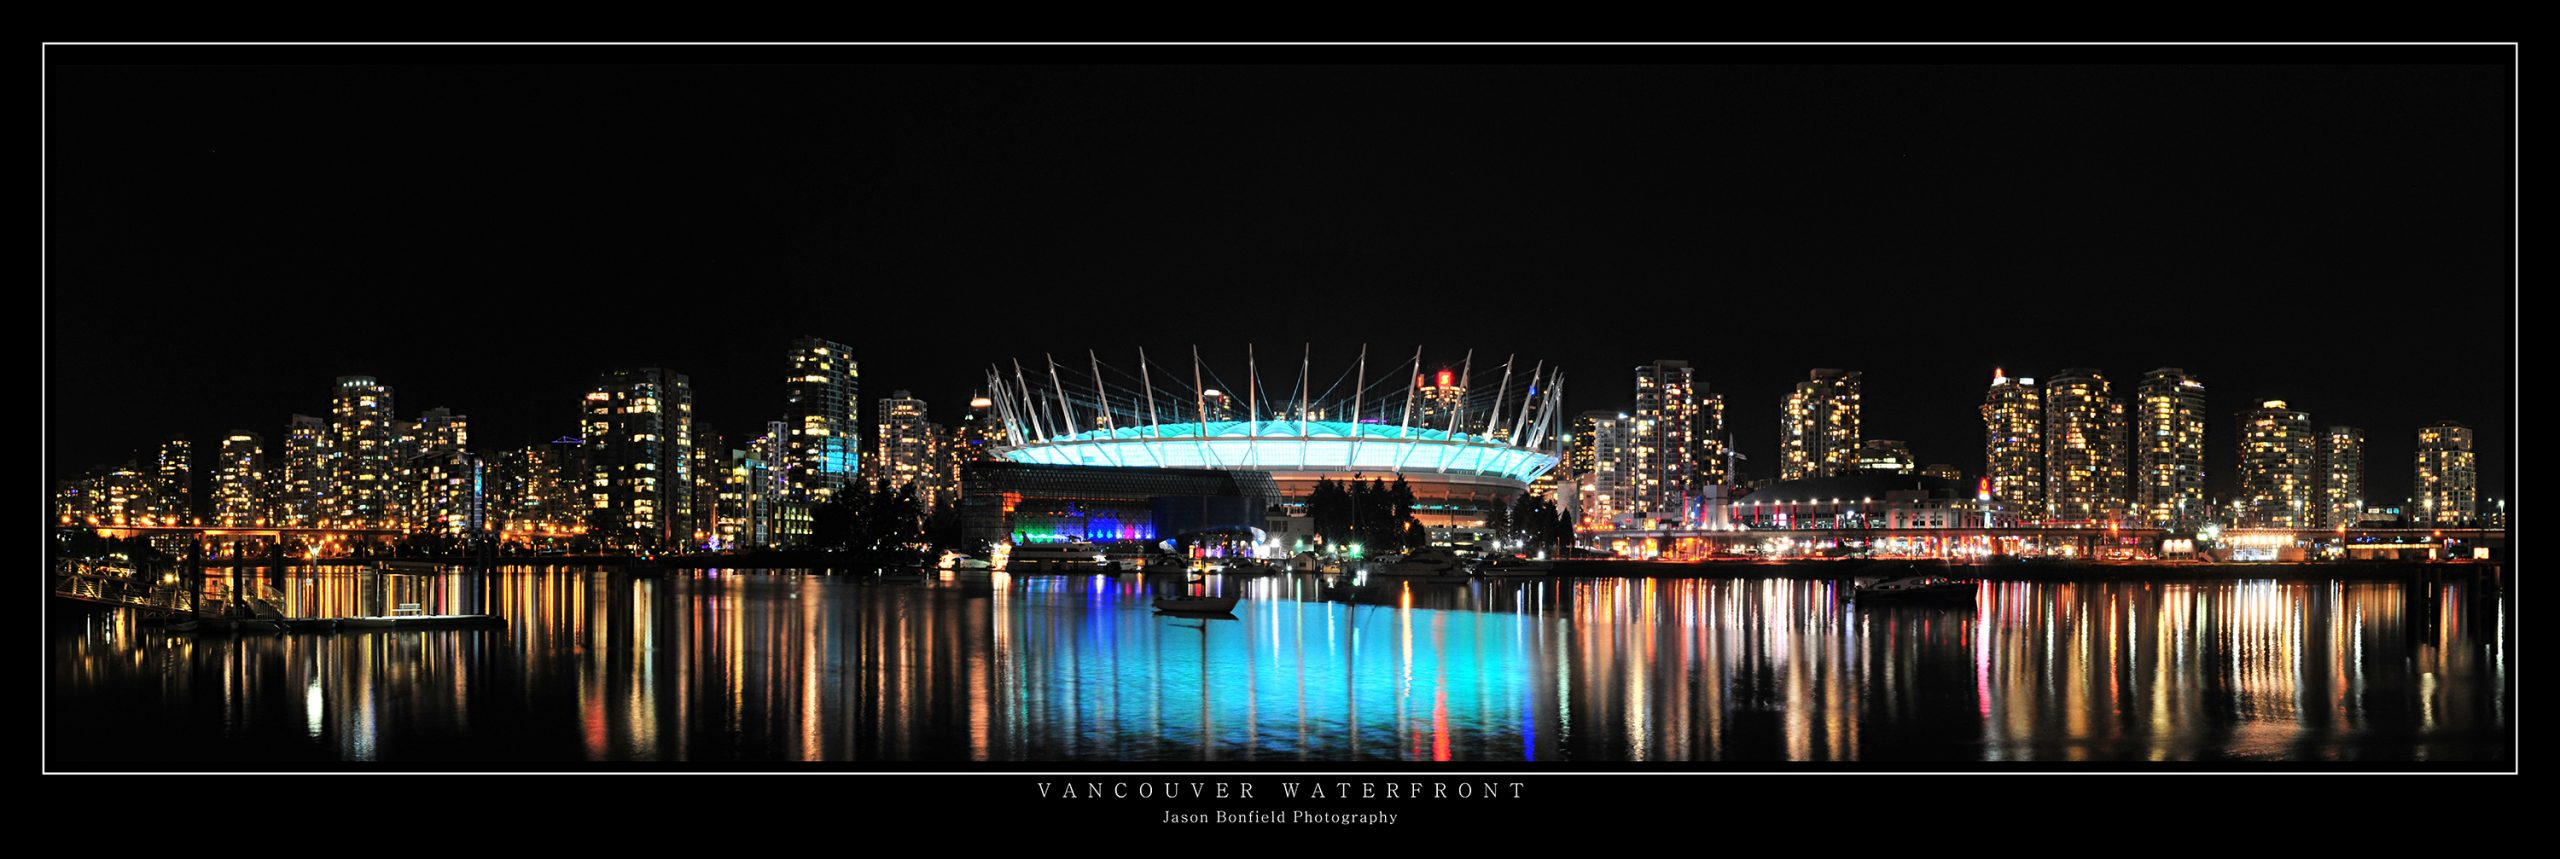 Vancouver City Waterfront at Night